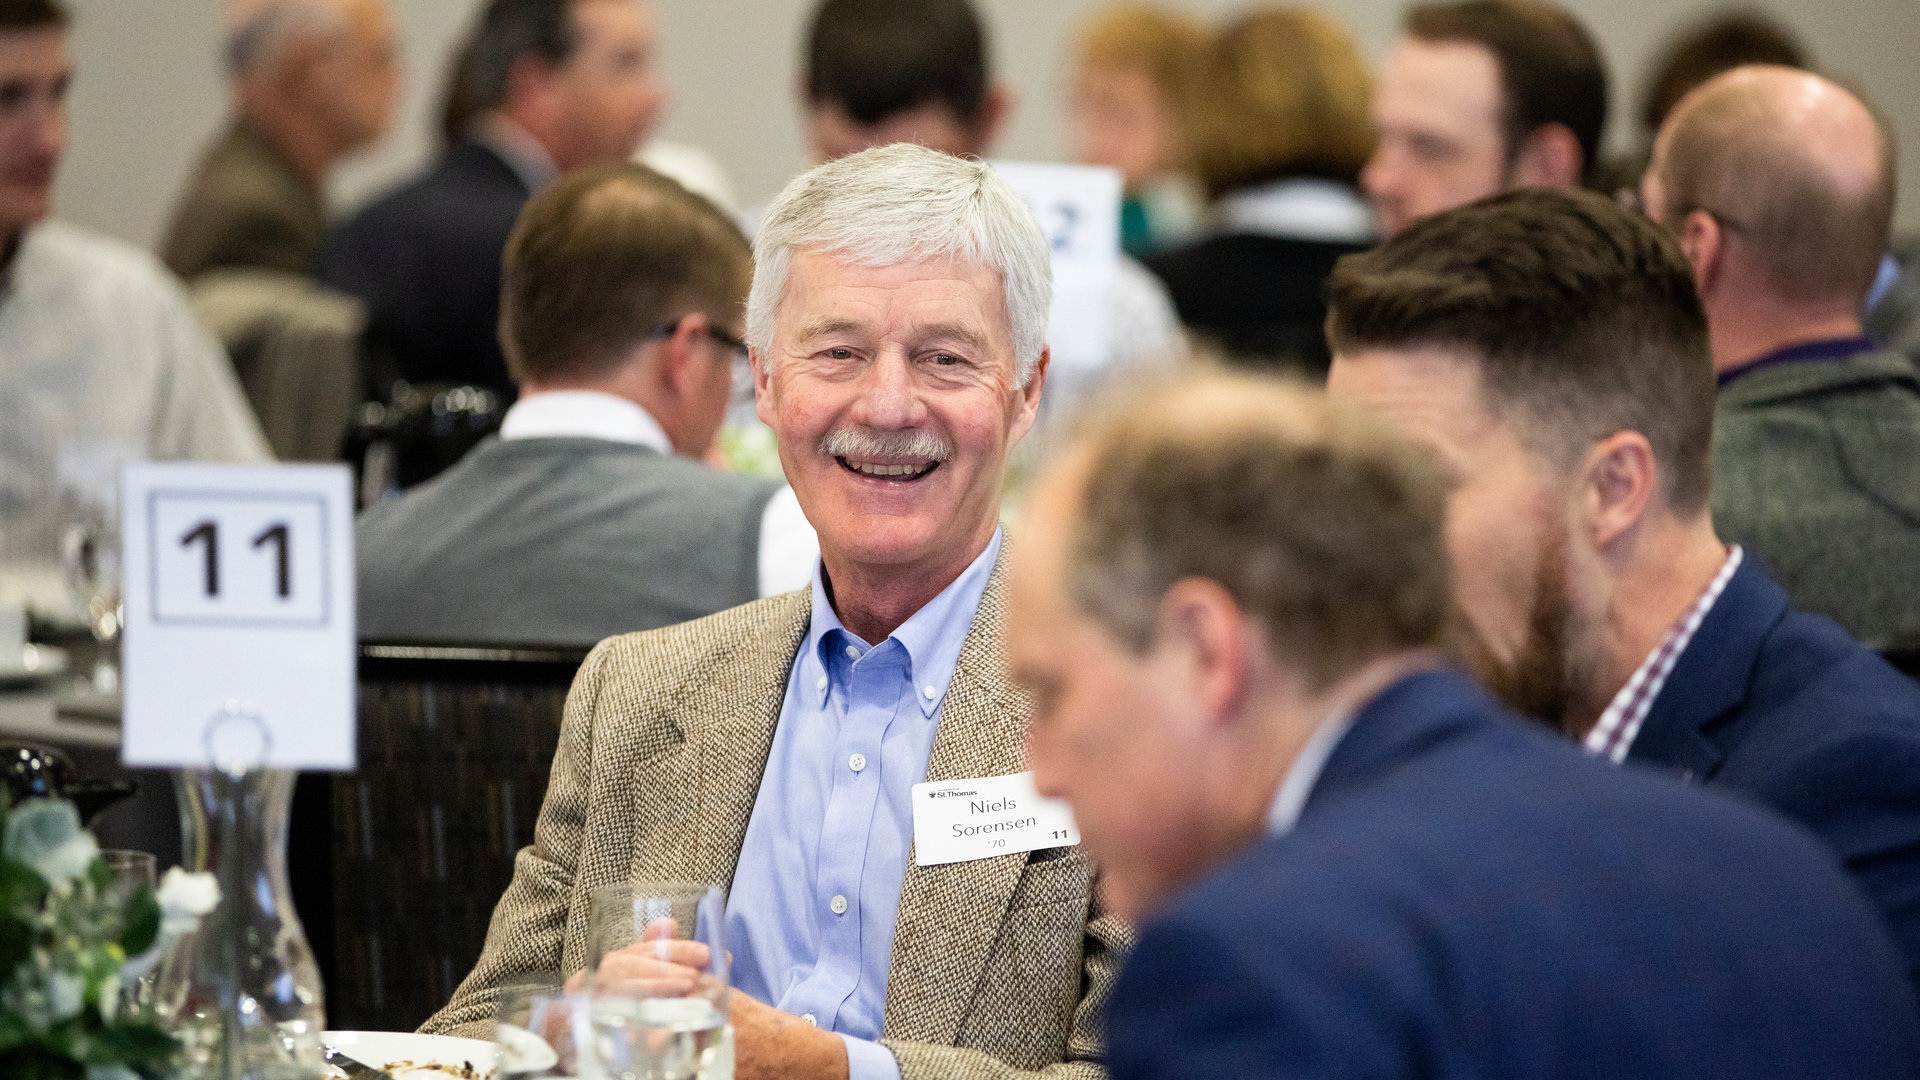 Man smiles at an event with alumni.